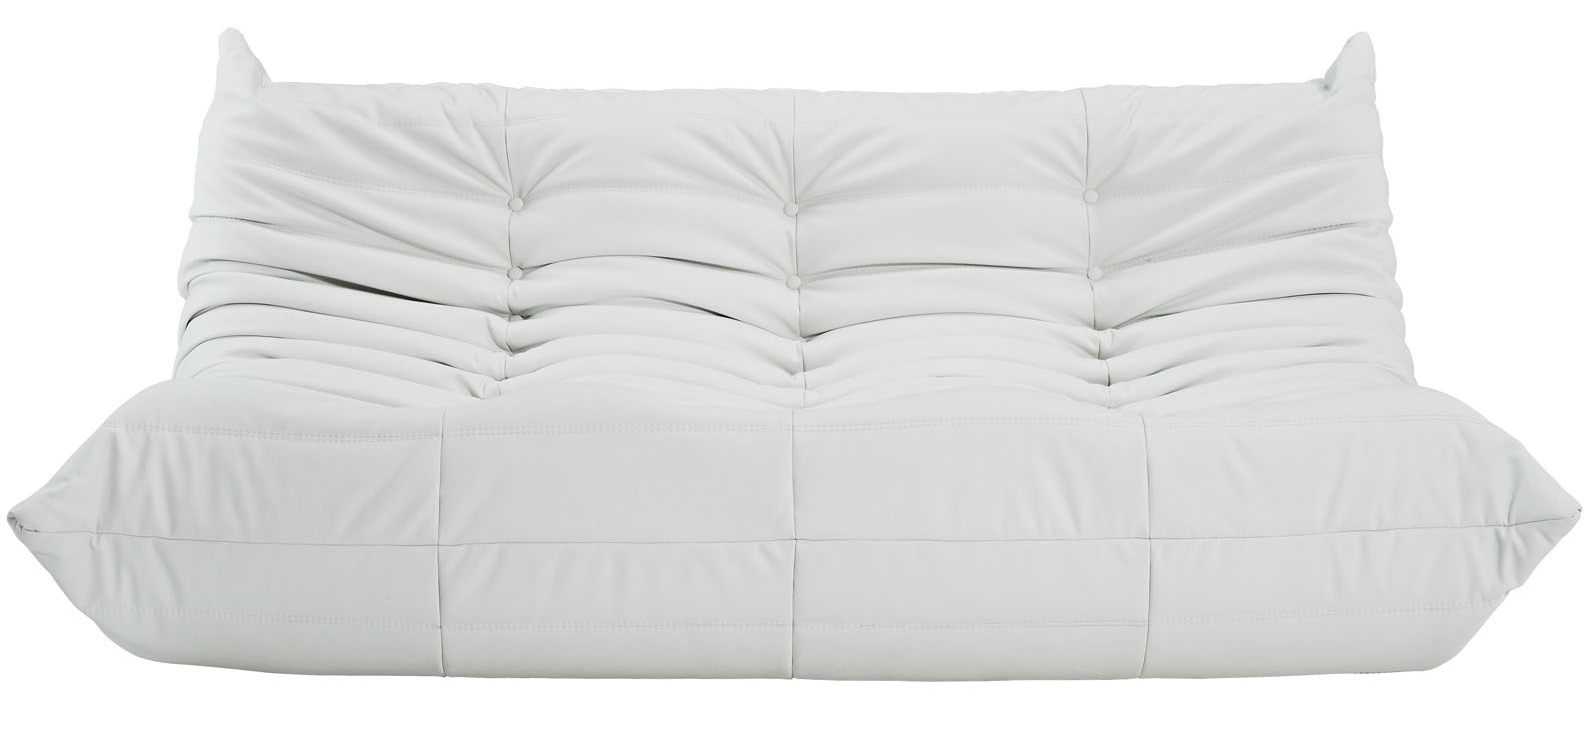 downlow-white-sofa.jpg